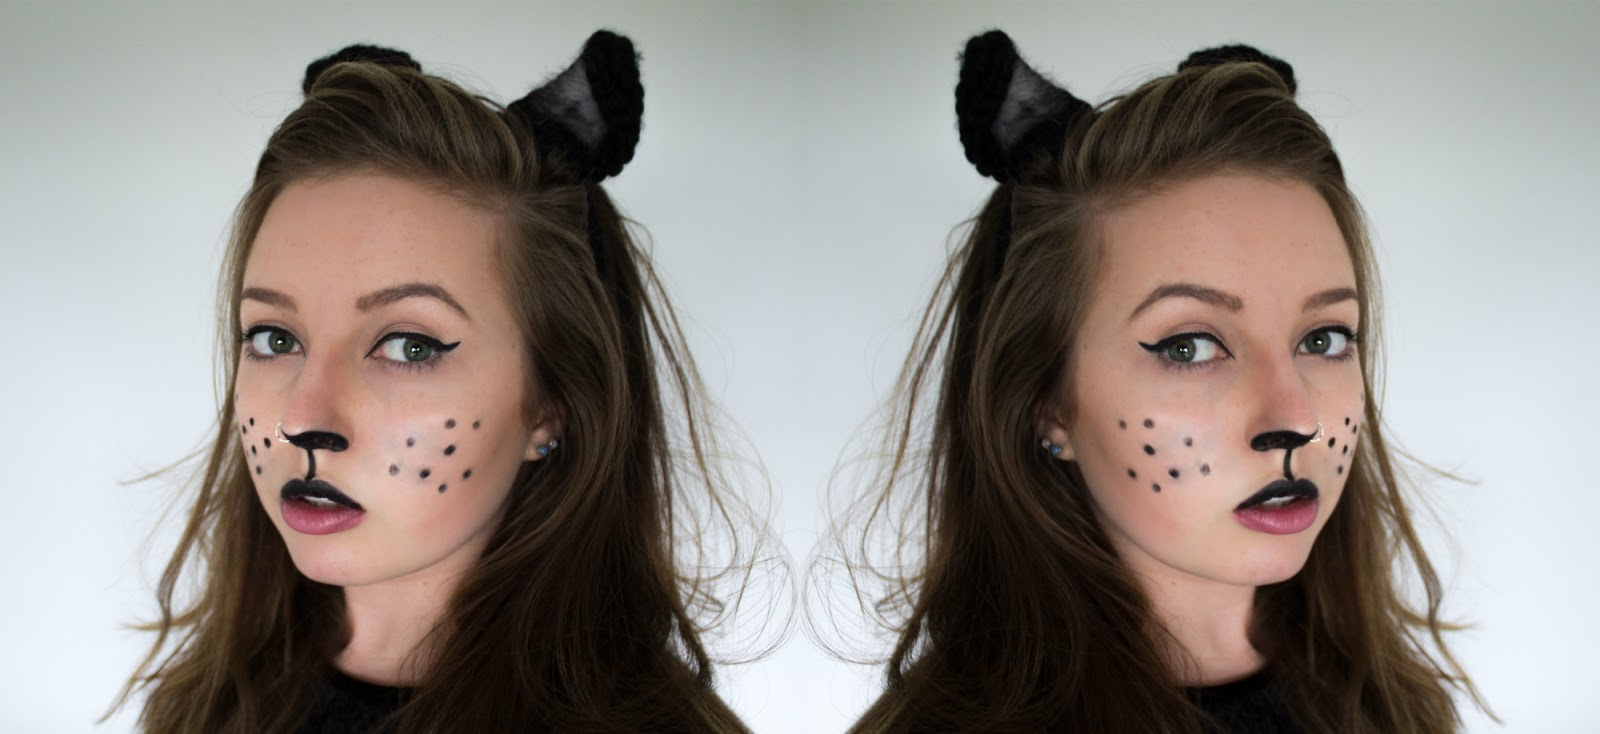 halloween diy #1 - easy cat makeup - lunas lens